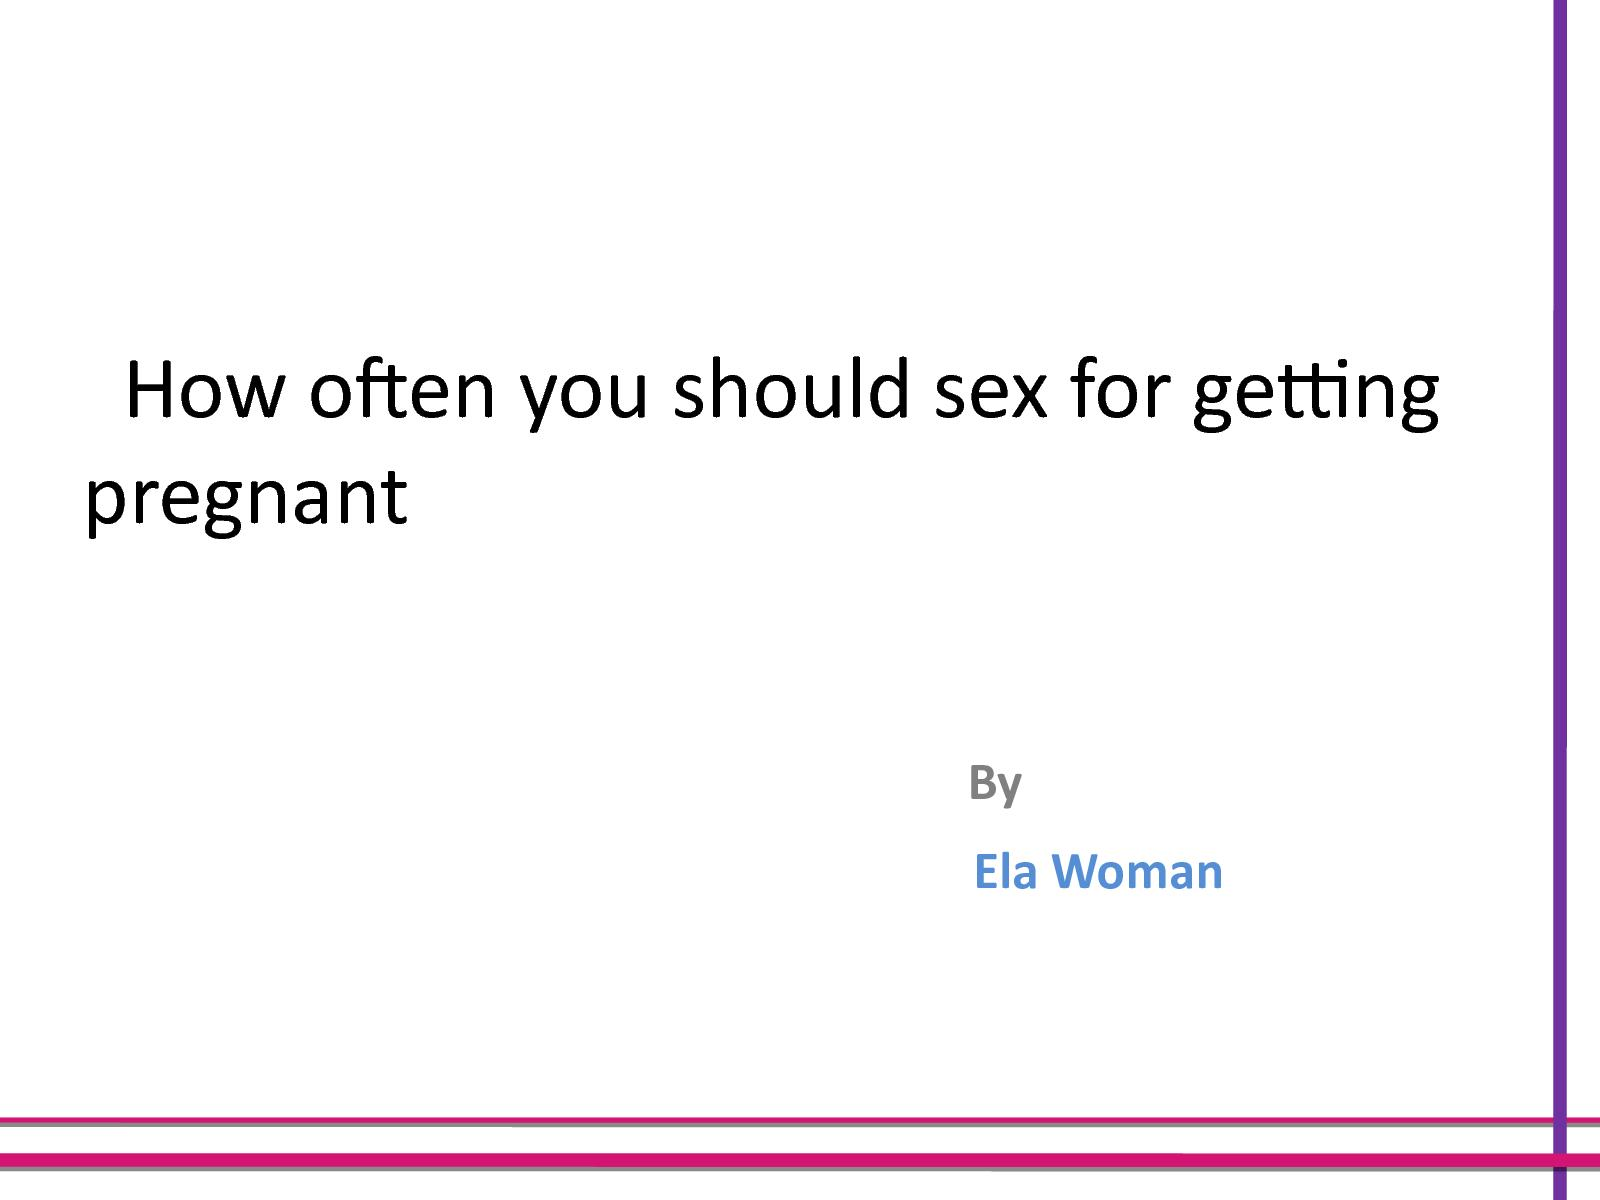 How often to have sex to get